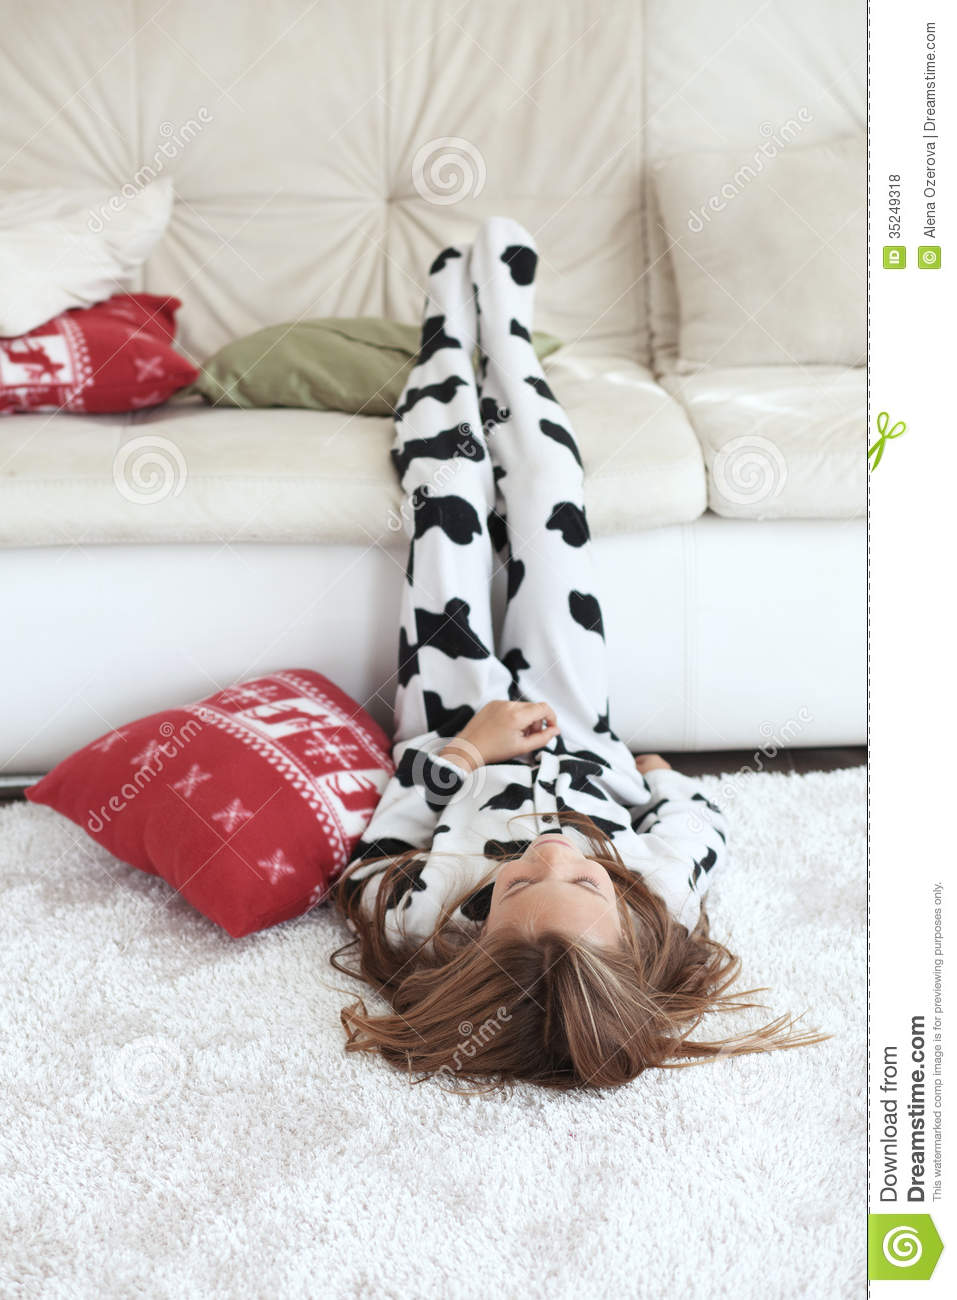 Portrait of child in soft warm cow print pajamas playing at home